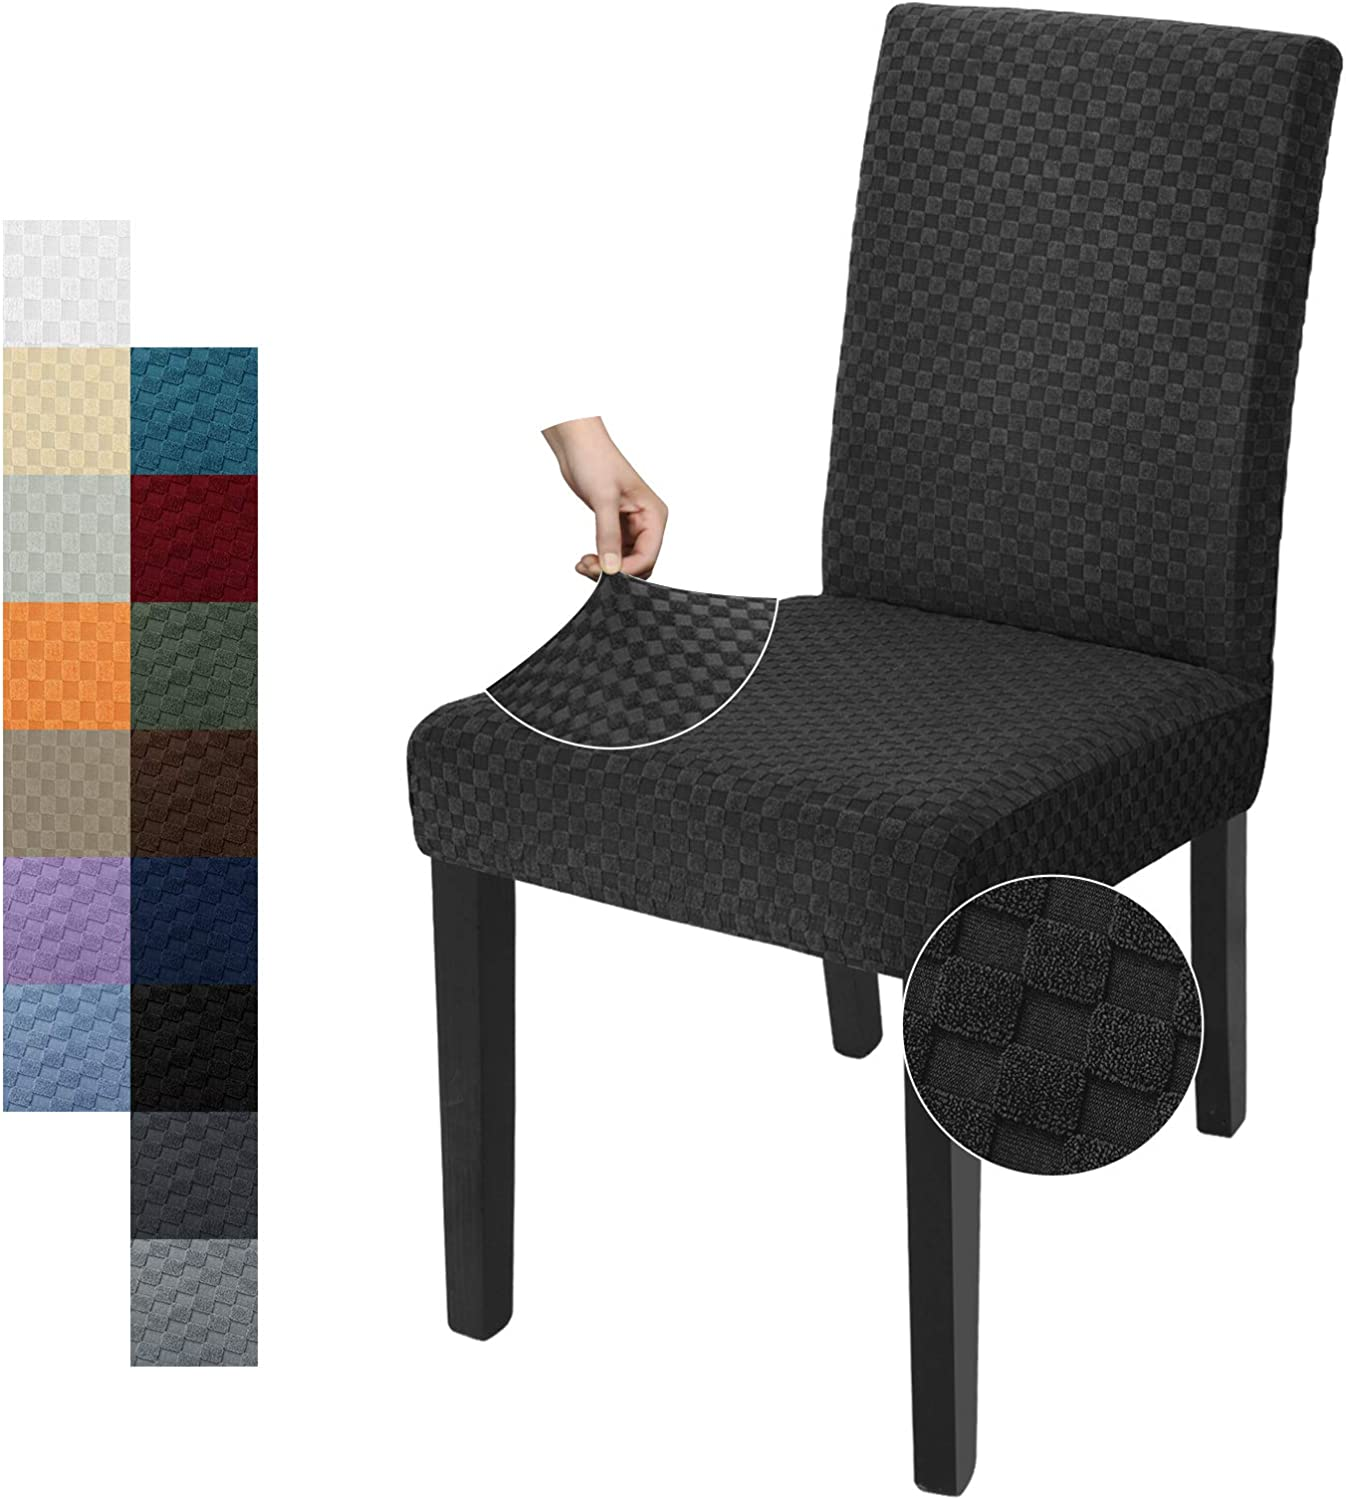 YEMYHOM 4 Packs Latest Checkered Dining Chair Slipcover Parsons Chair Furniture Protector Stretch Chair Covers for Dining Room, Restaurant, Kitchen, Party (Black)